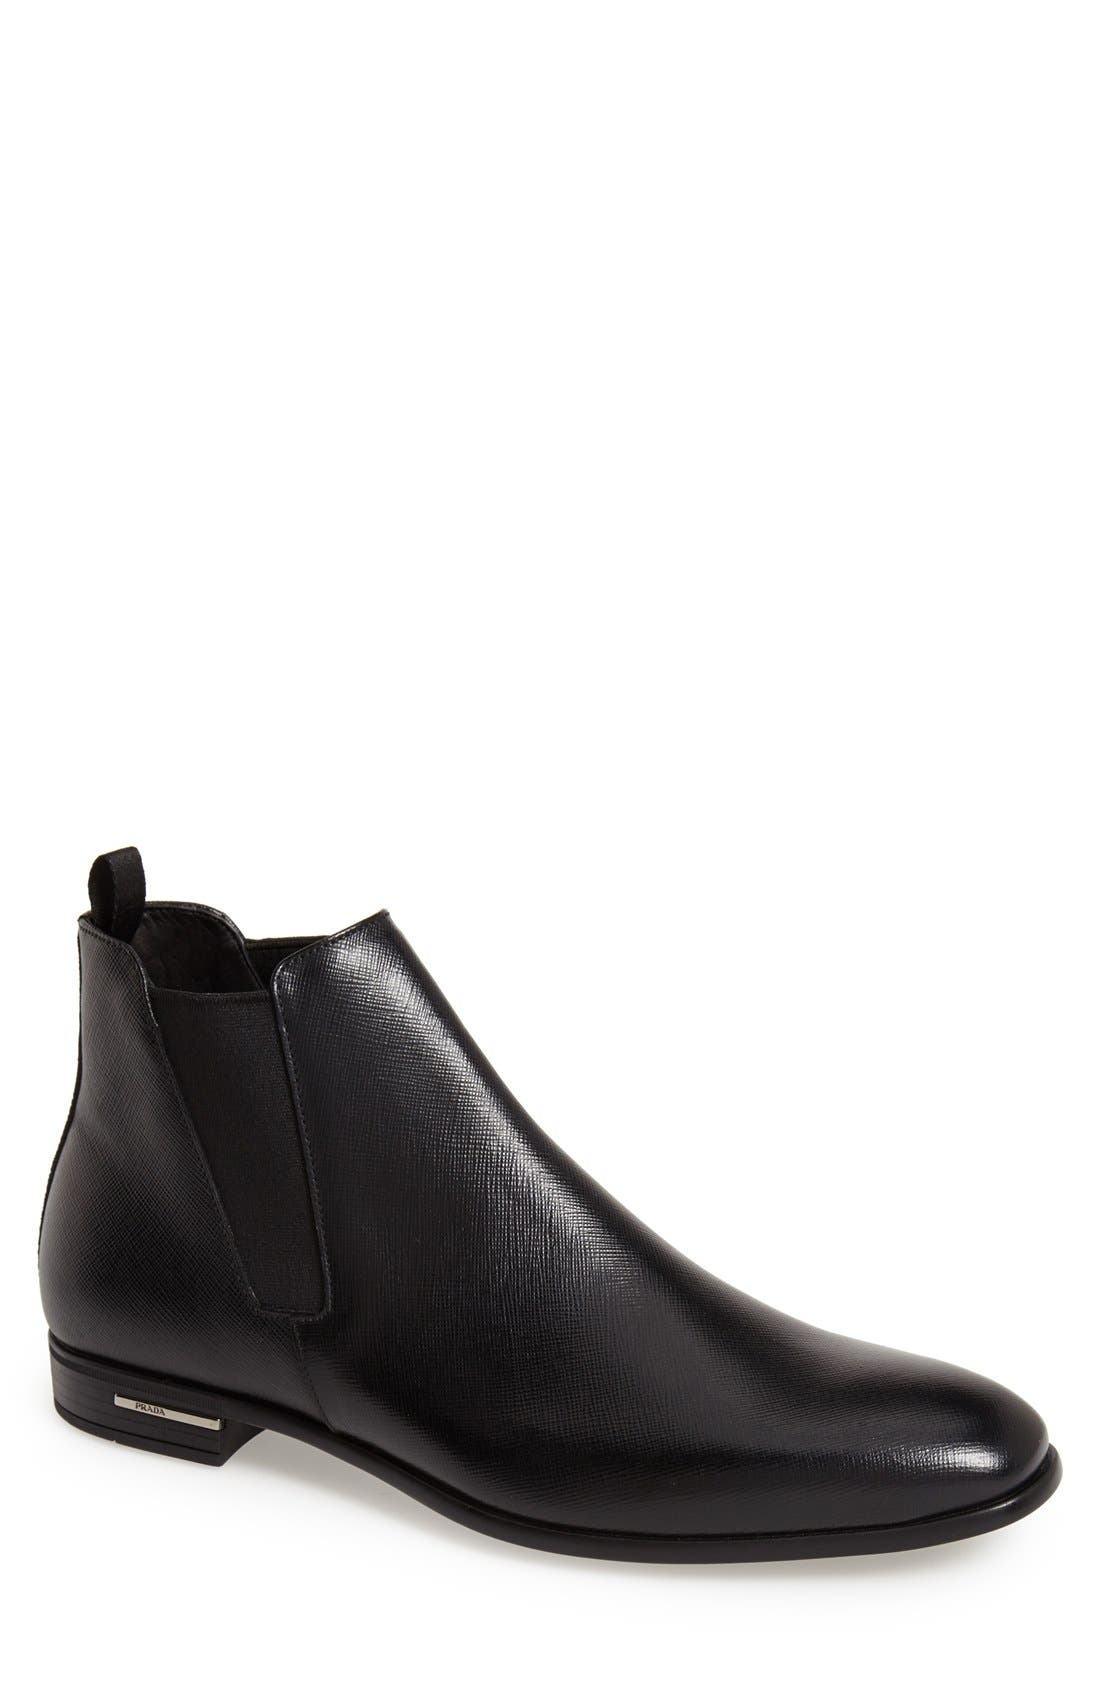 Saffiano Leather Chelsea Boot,                         Main,                         color, BLACK